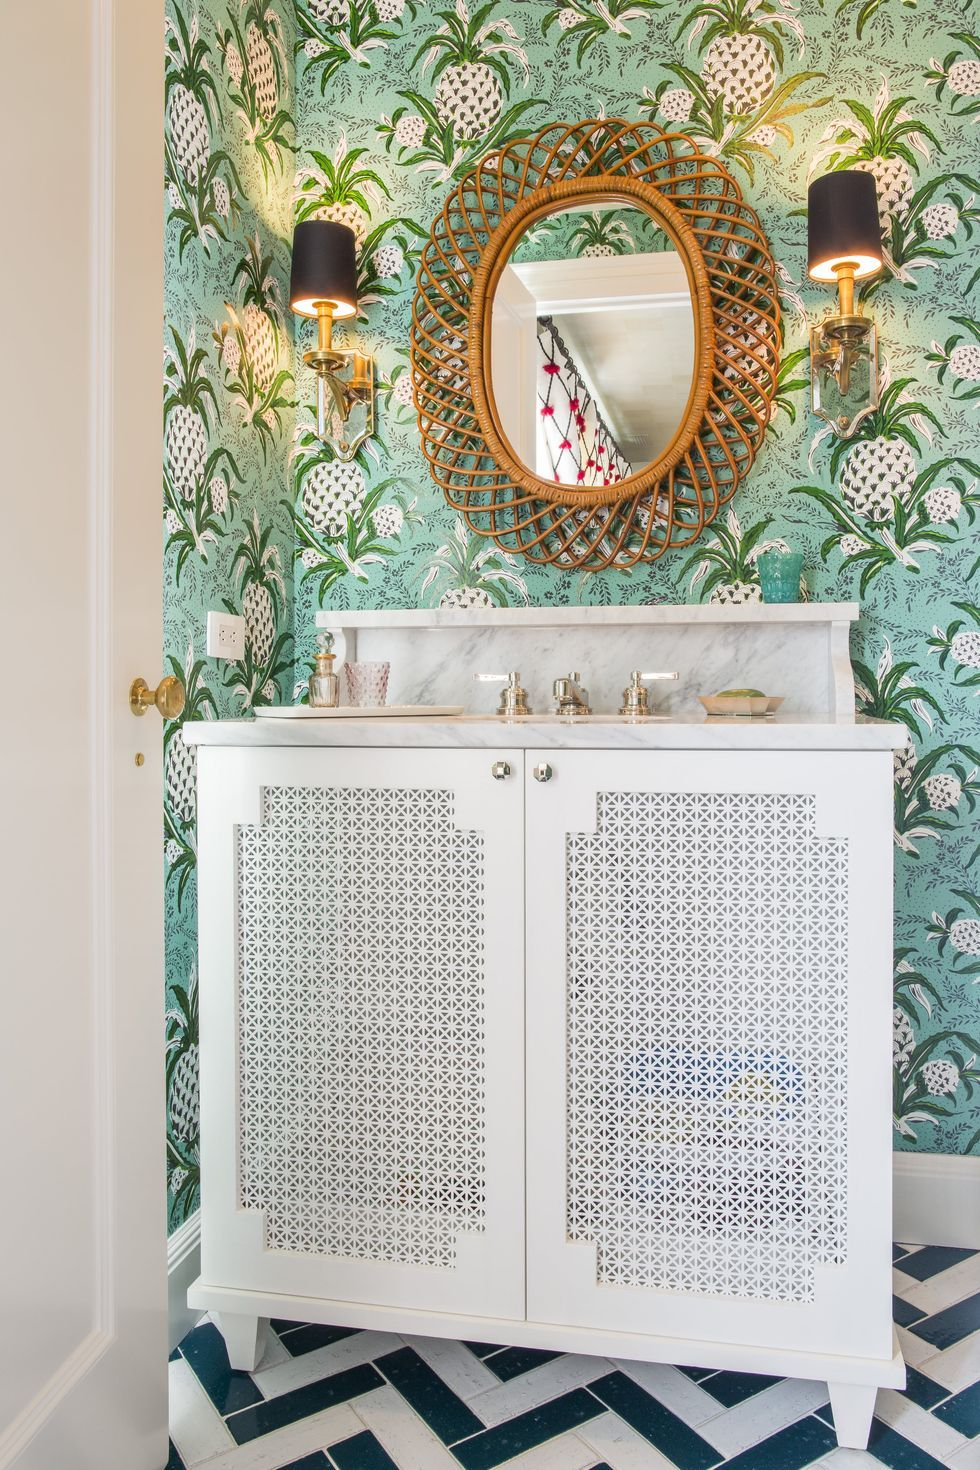 These Whimsical Powder Rooms Are Full of Design